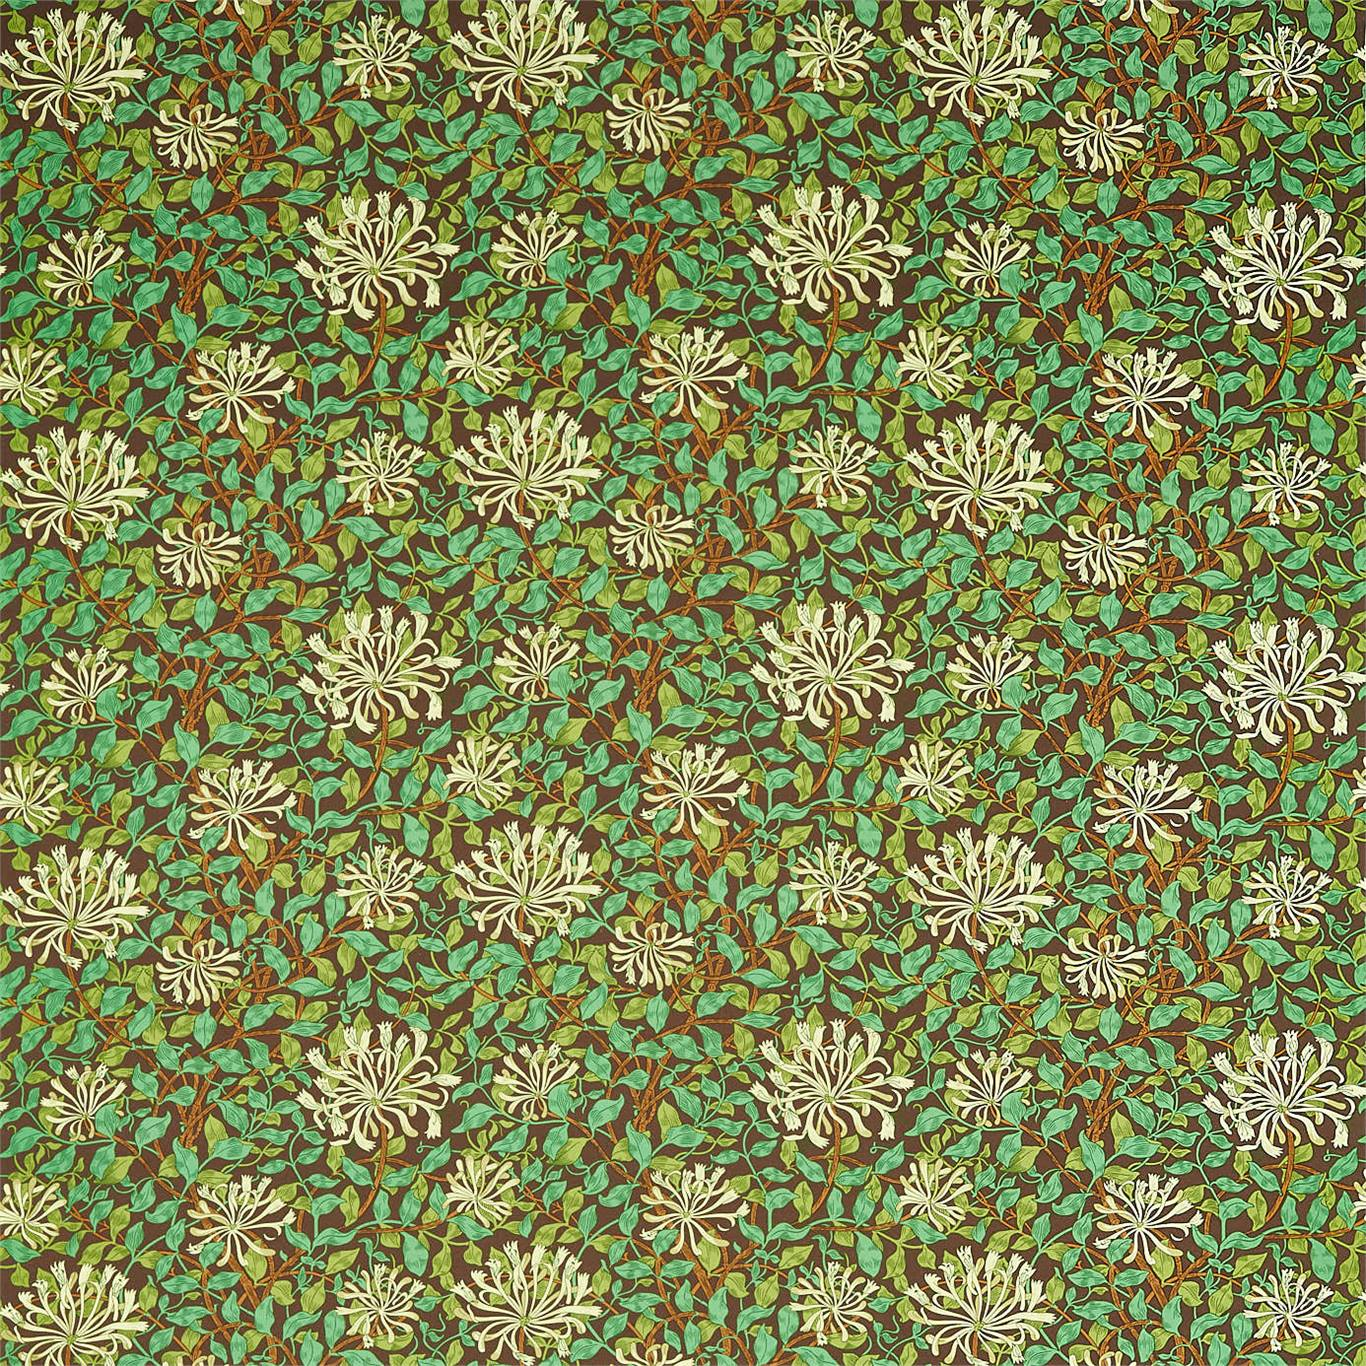 DBPF226851 Collection - Queens Square Fabric